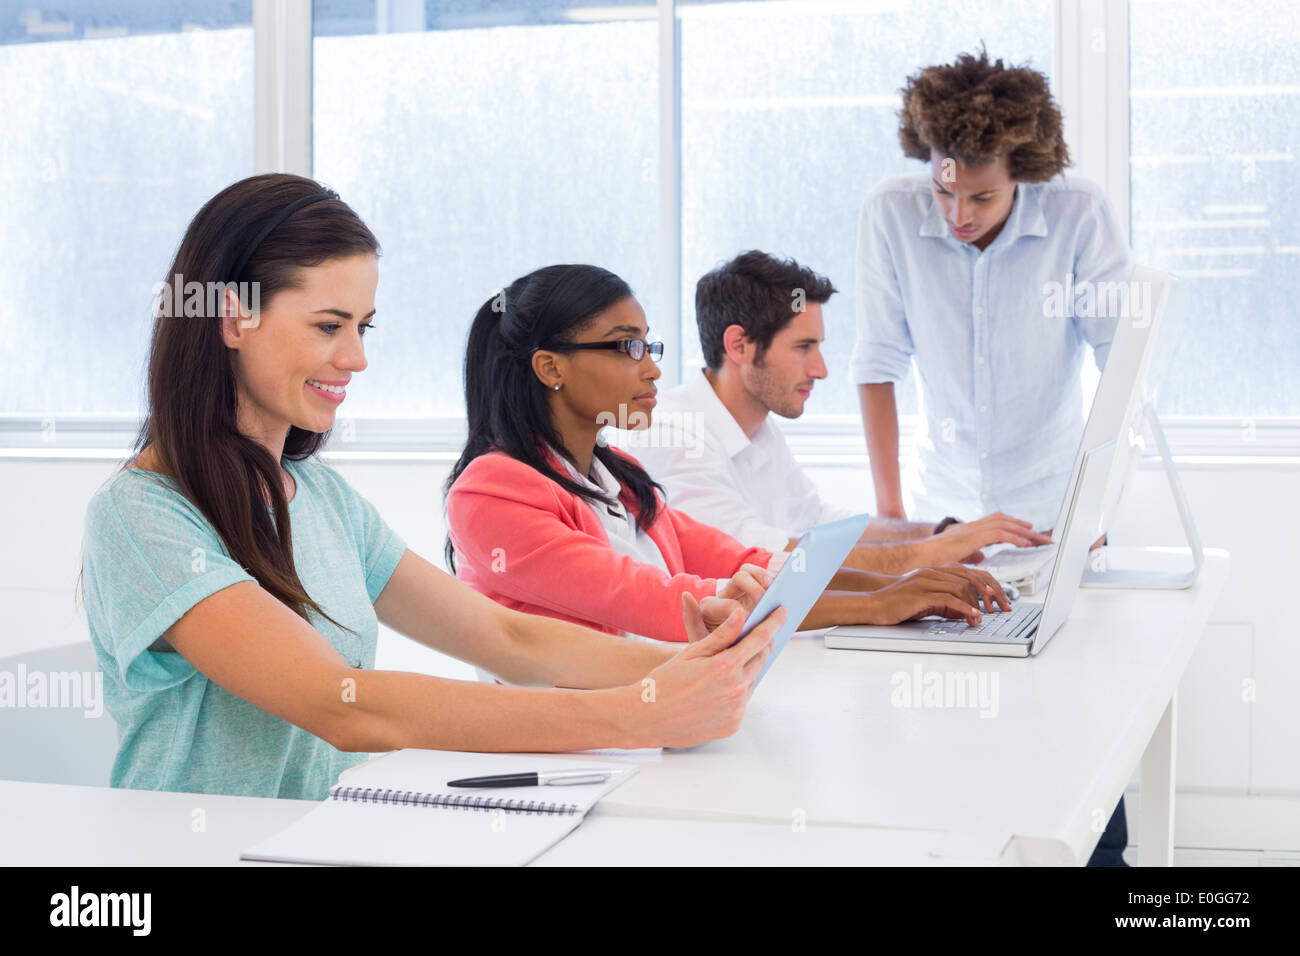 Workers on tablets and laptops Stock Photo